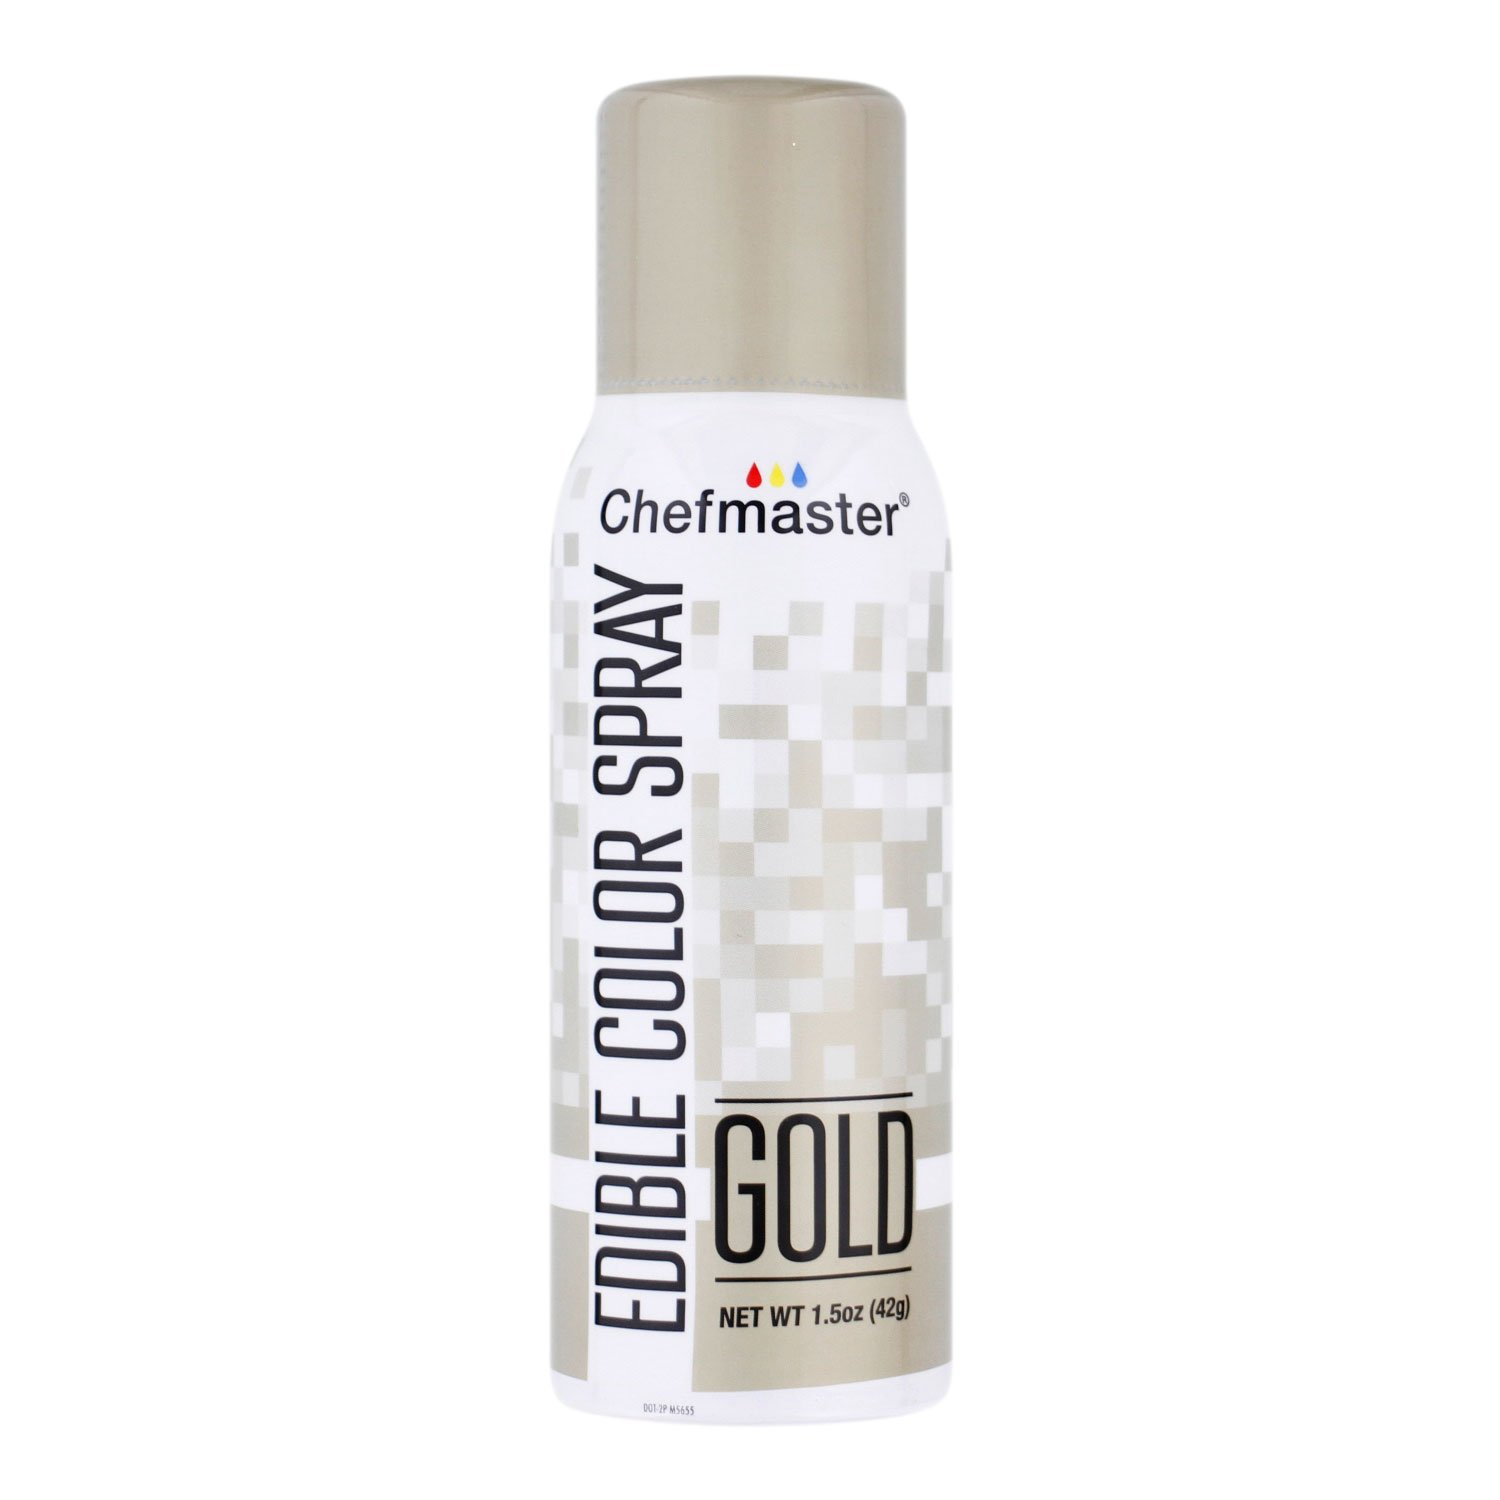 Chefmaster Edible Spray Cake Decorating Color 1.5oz Can - Metallic Gold by Chefmaster